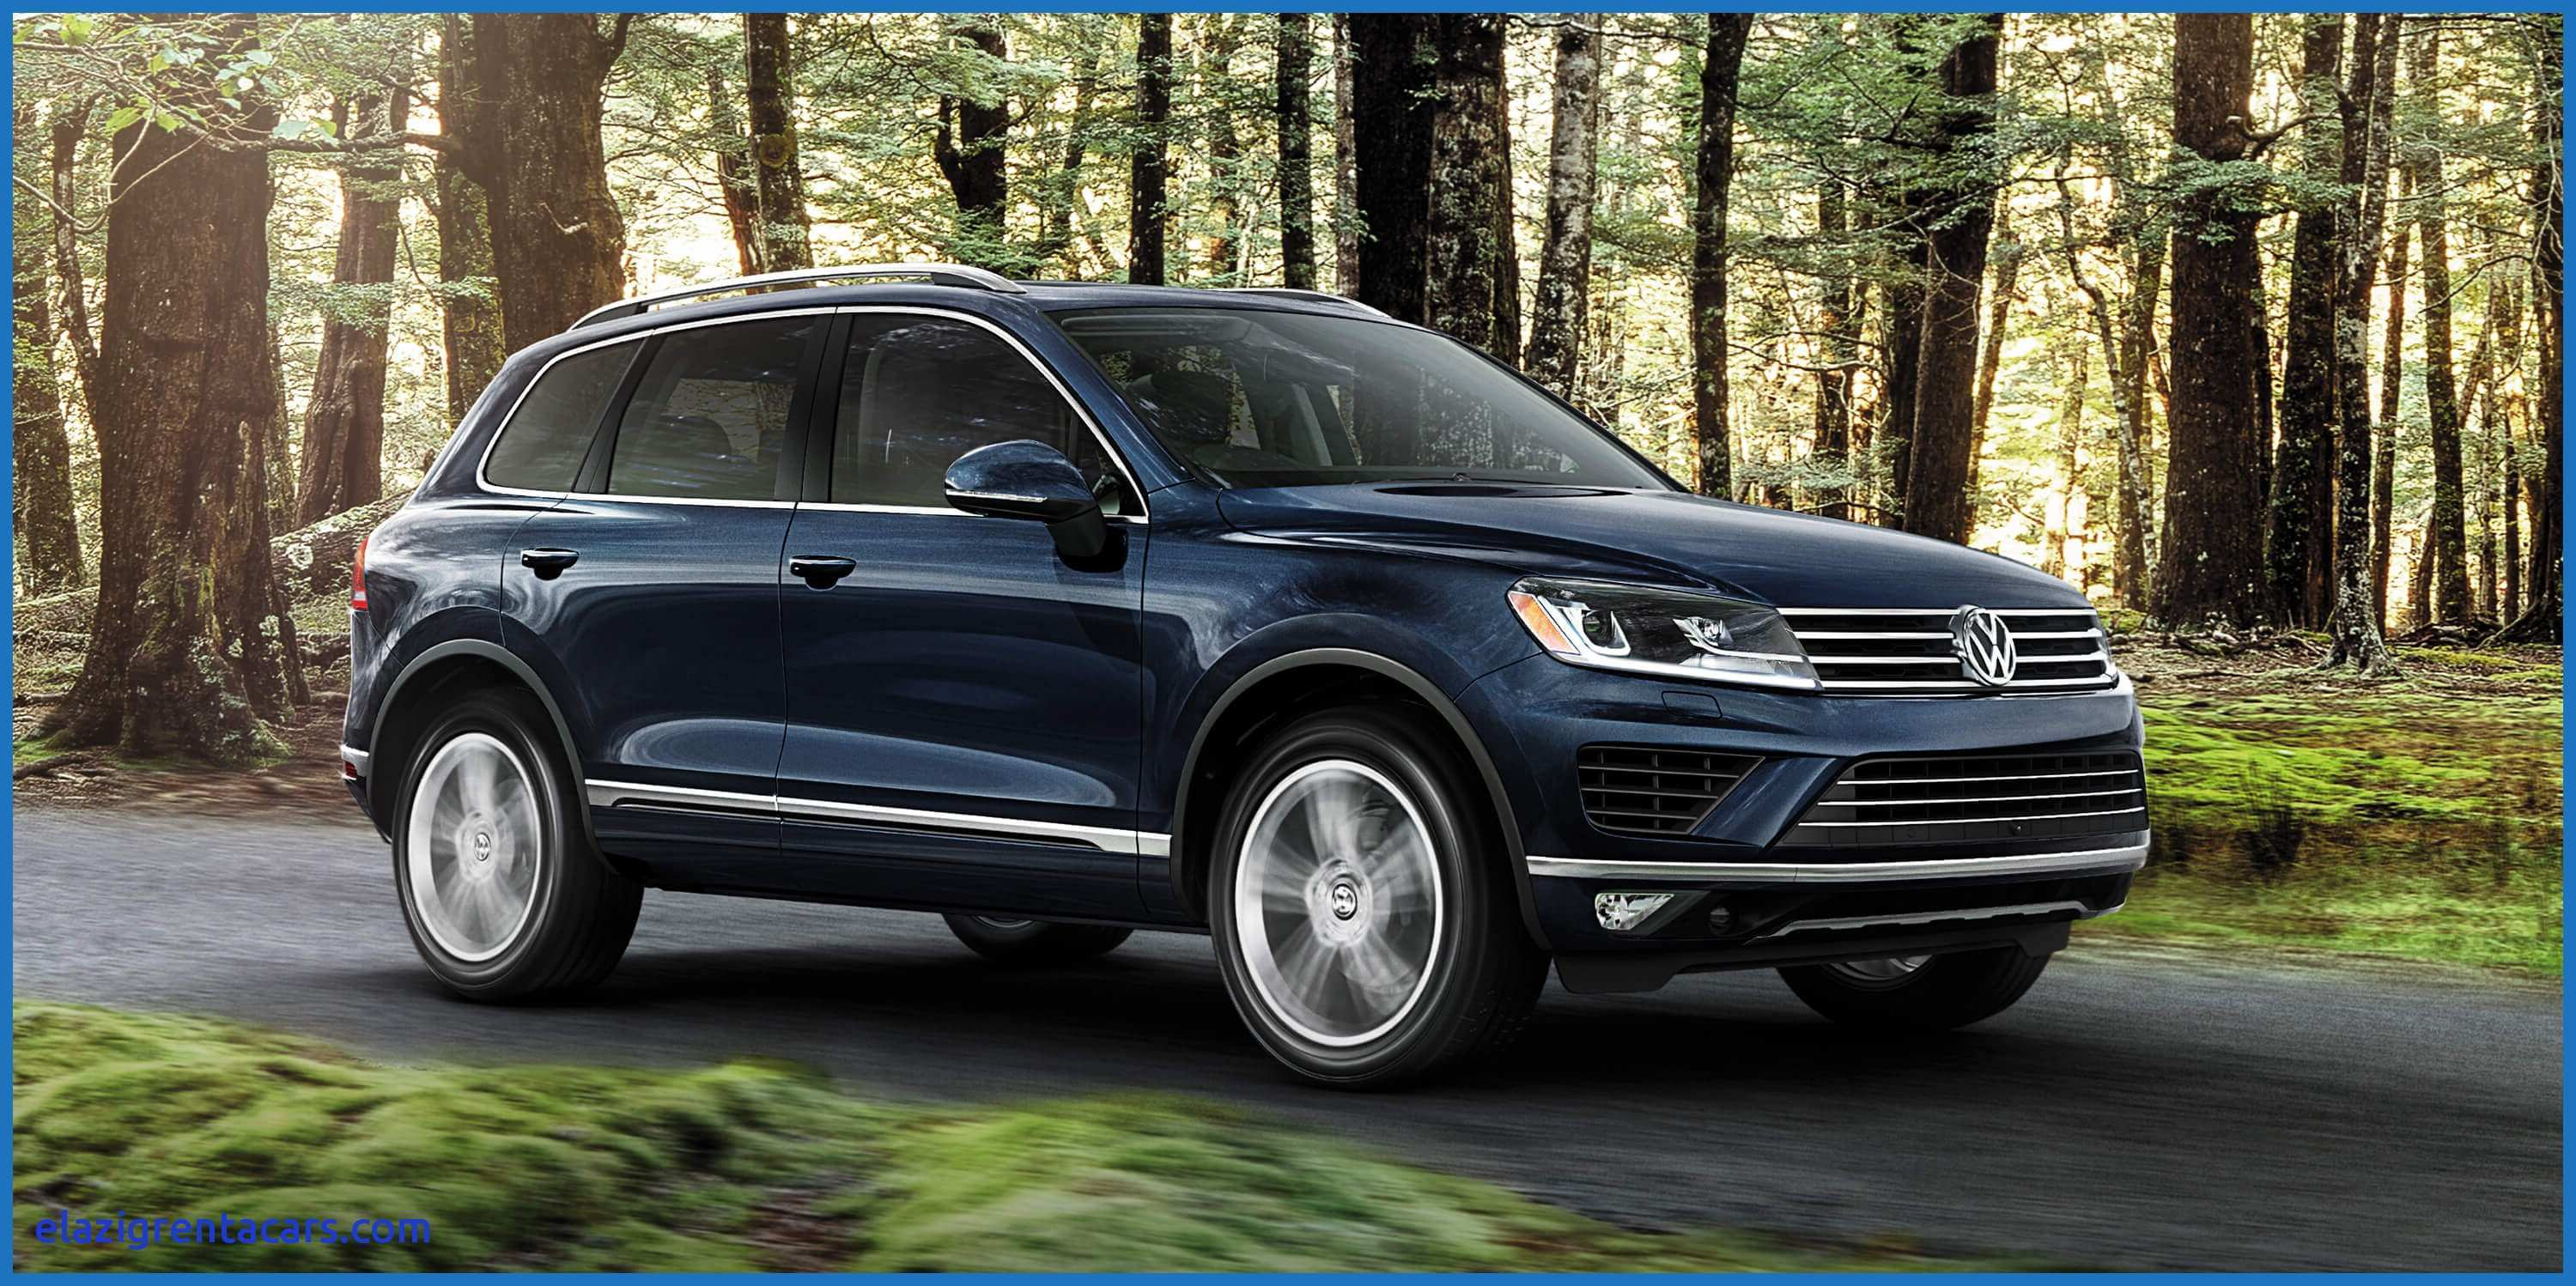 80 All New 2019 Vw Touareg Tdi Redesign